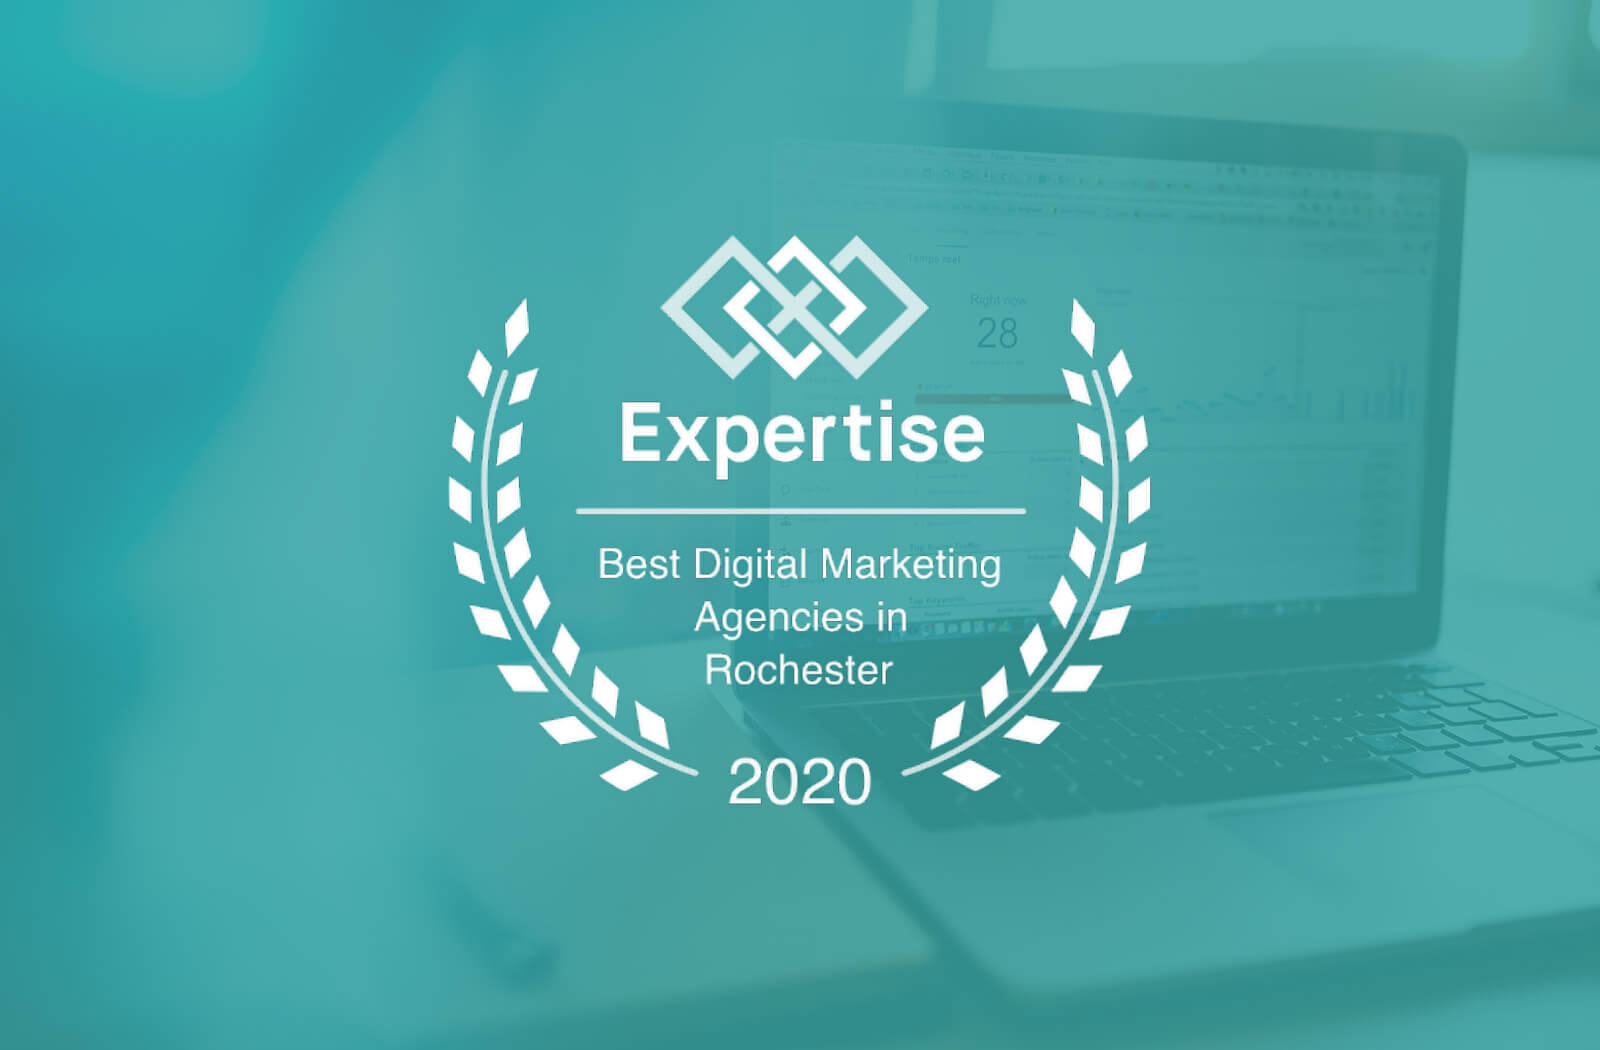 Arca Interactive Ranked in Top 19 Best Digital Marketing Agencies in Rochester by Expertise